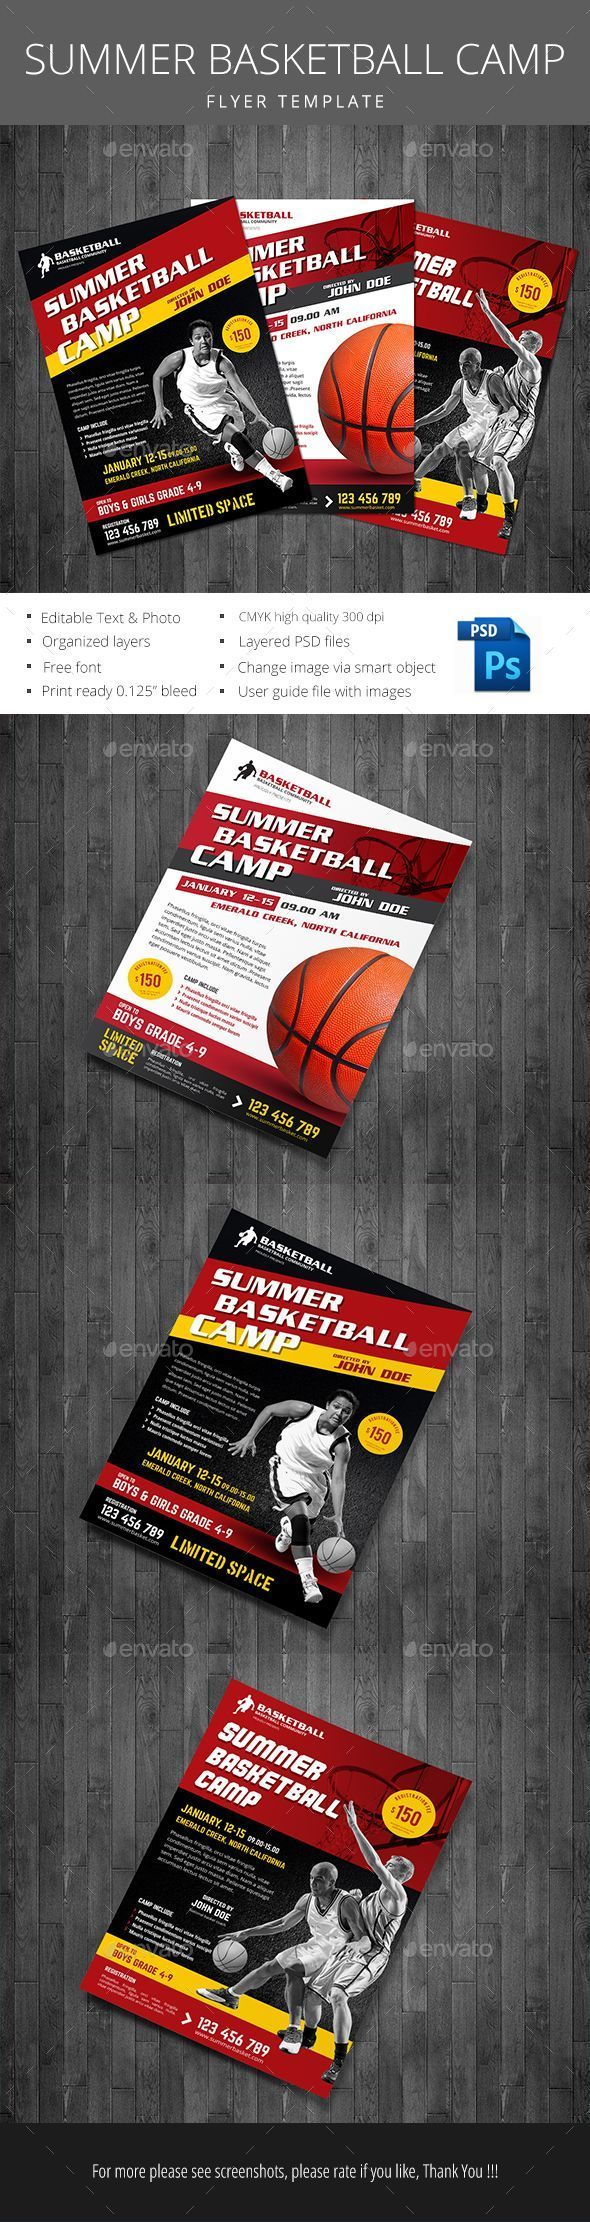 pin by basketball pro on all about basketball pinterest